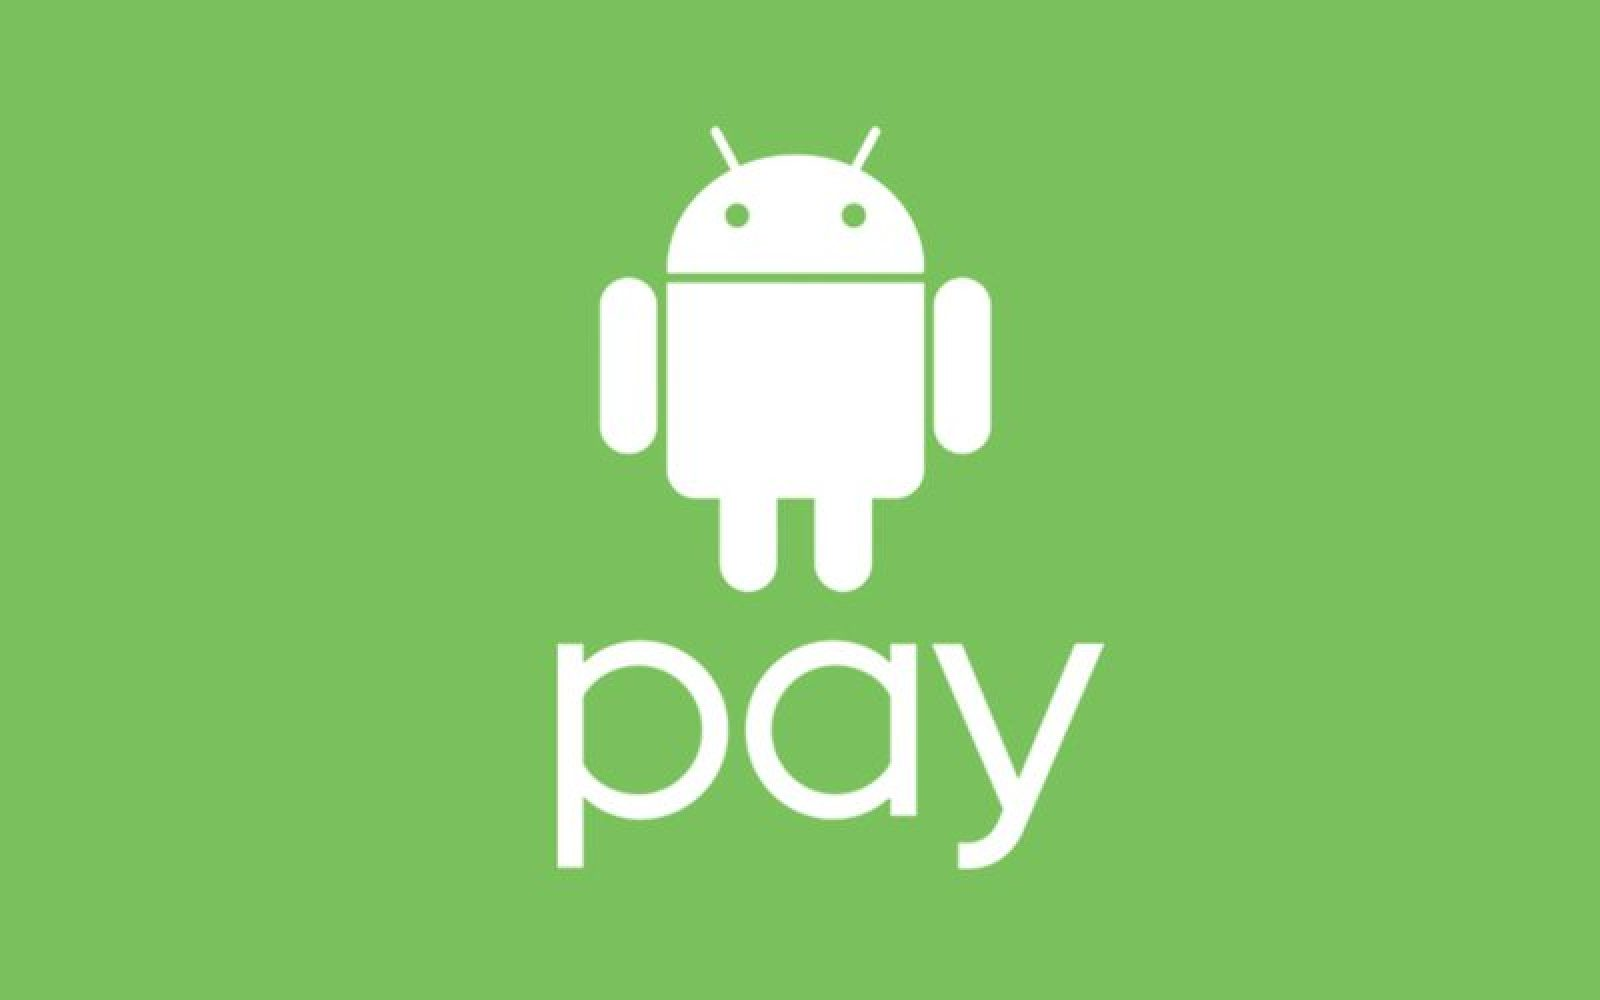 Android Pay adds support for nine additional U.S. banks